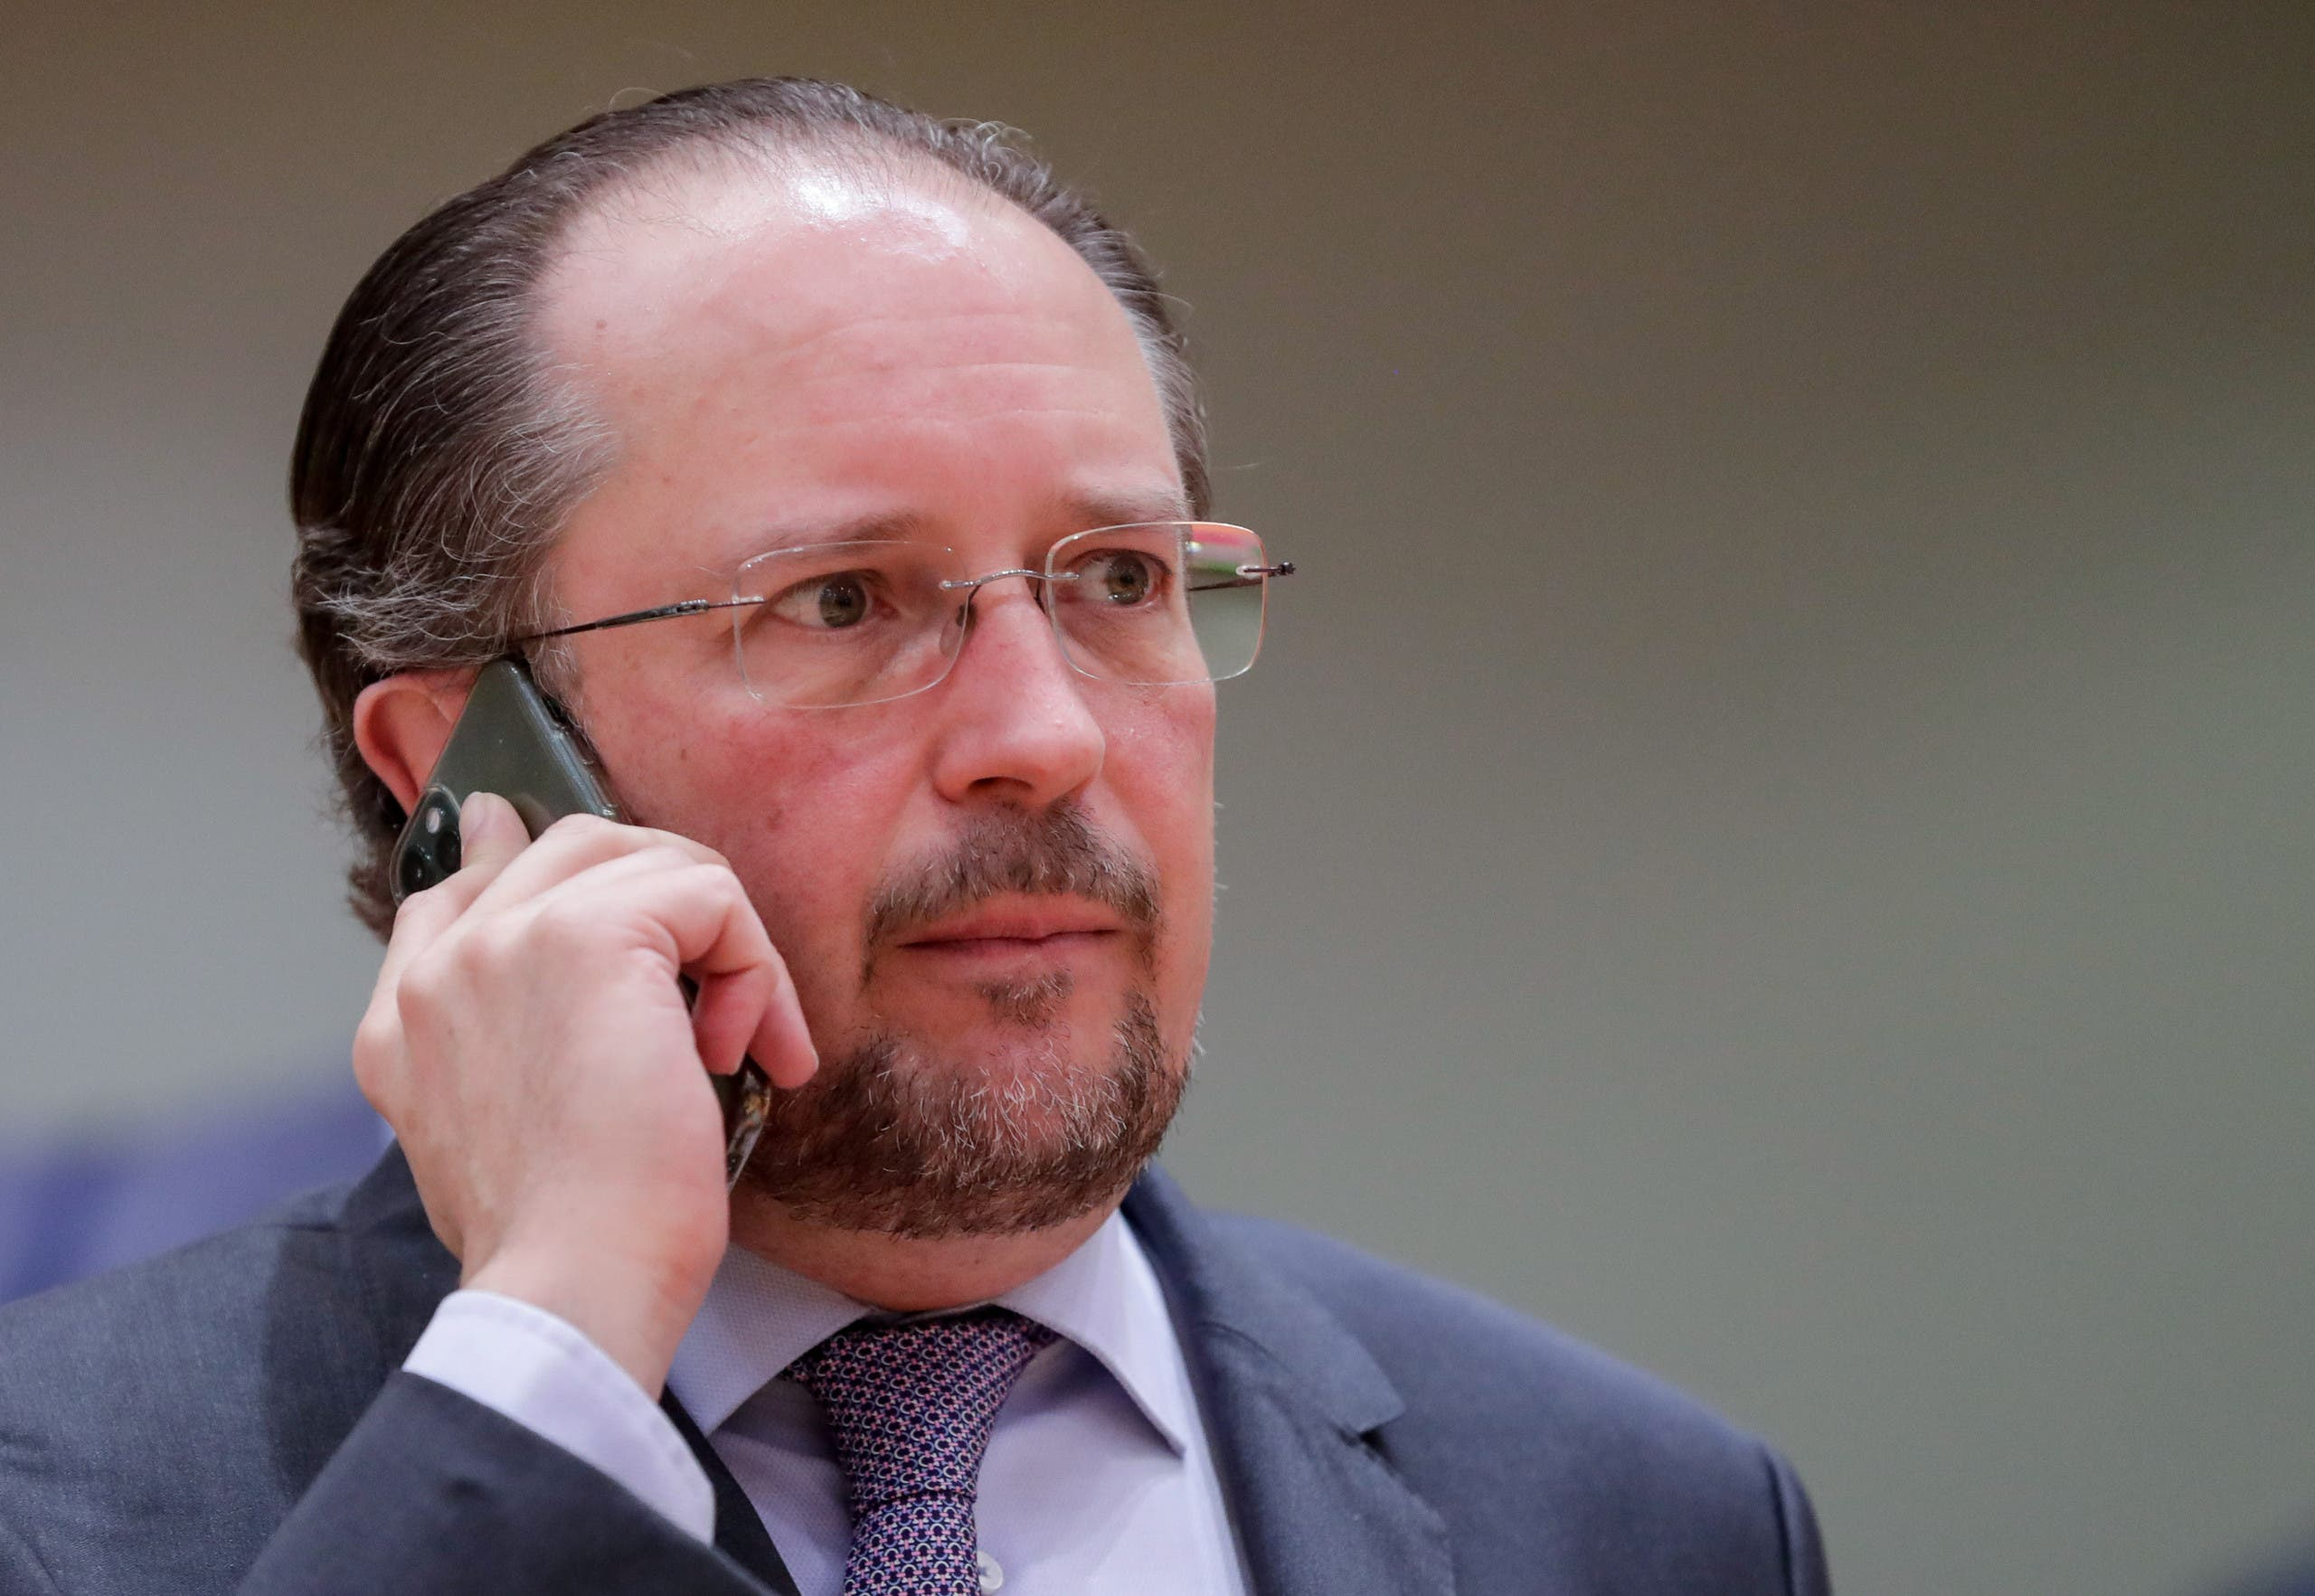 Austrian Foreign Minister Alexander Schallenberg attends a meeting of EU foreign ministers at the European Council building in Brussels, Belgium July 13, 2020. (Reuters)